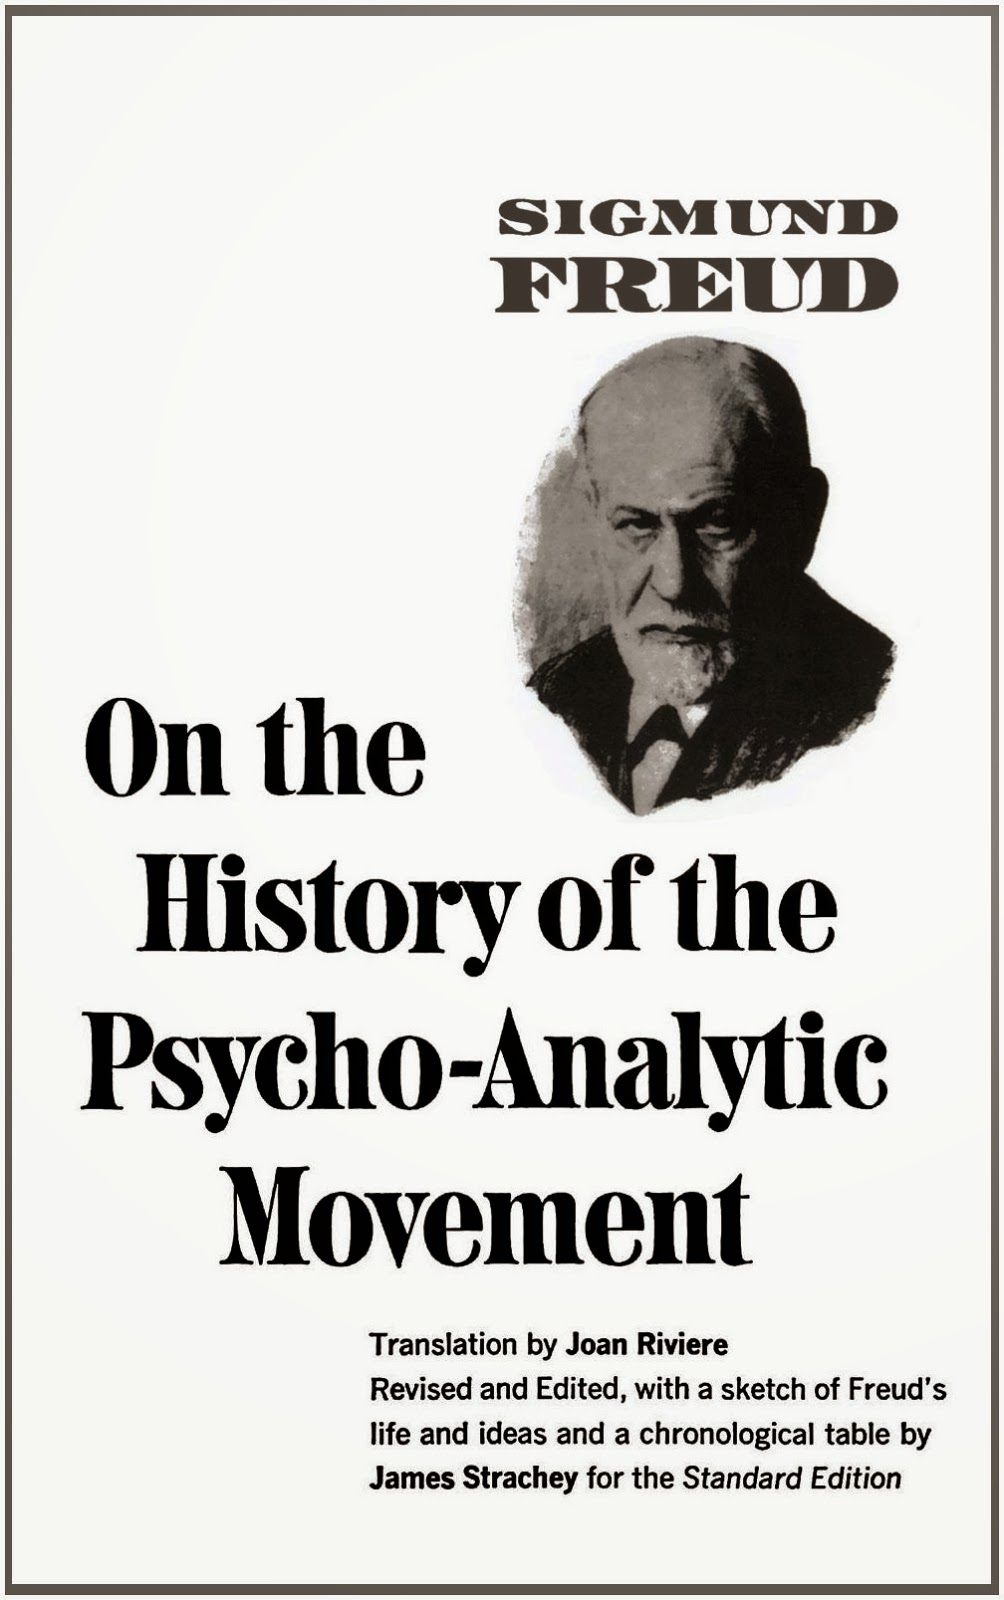 Freud quotes free ebook the history of the psychoanalytic free ebook the history of the psychoanalytic movement by sigmund freud fandeluxe Gallery